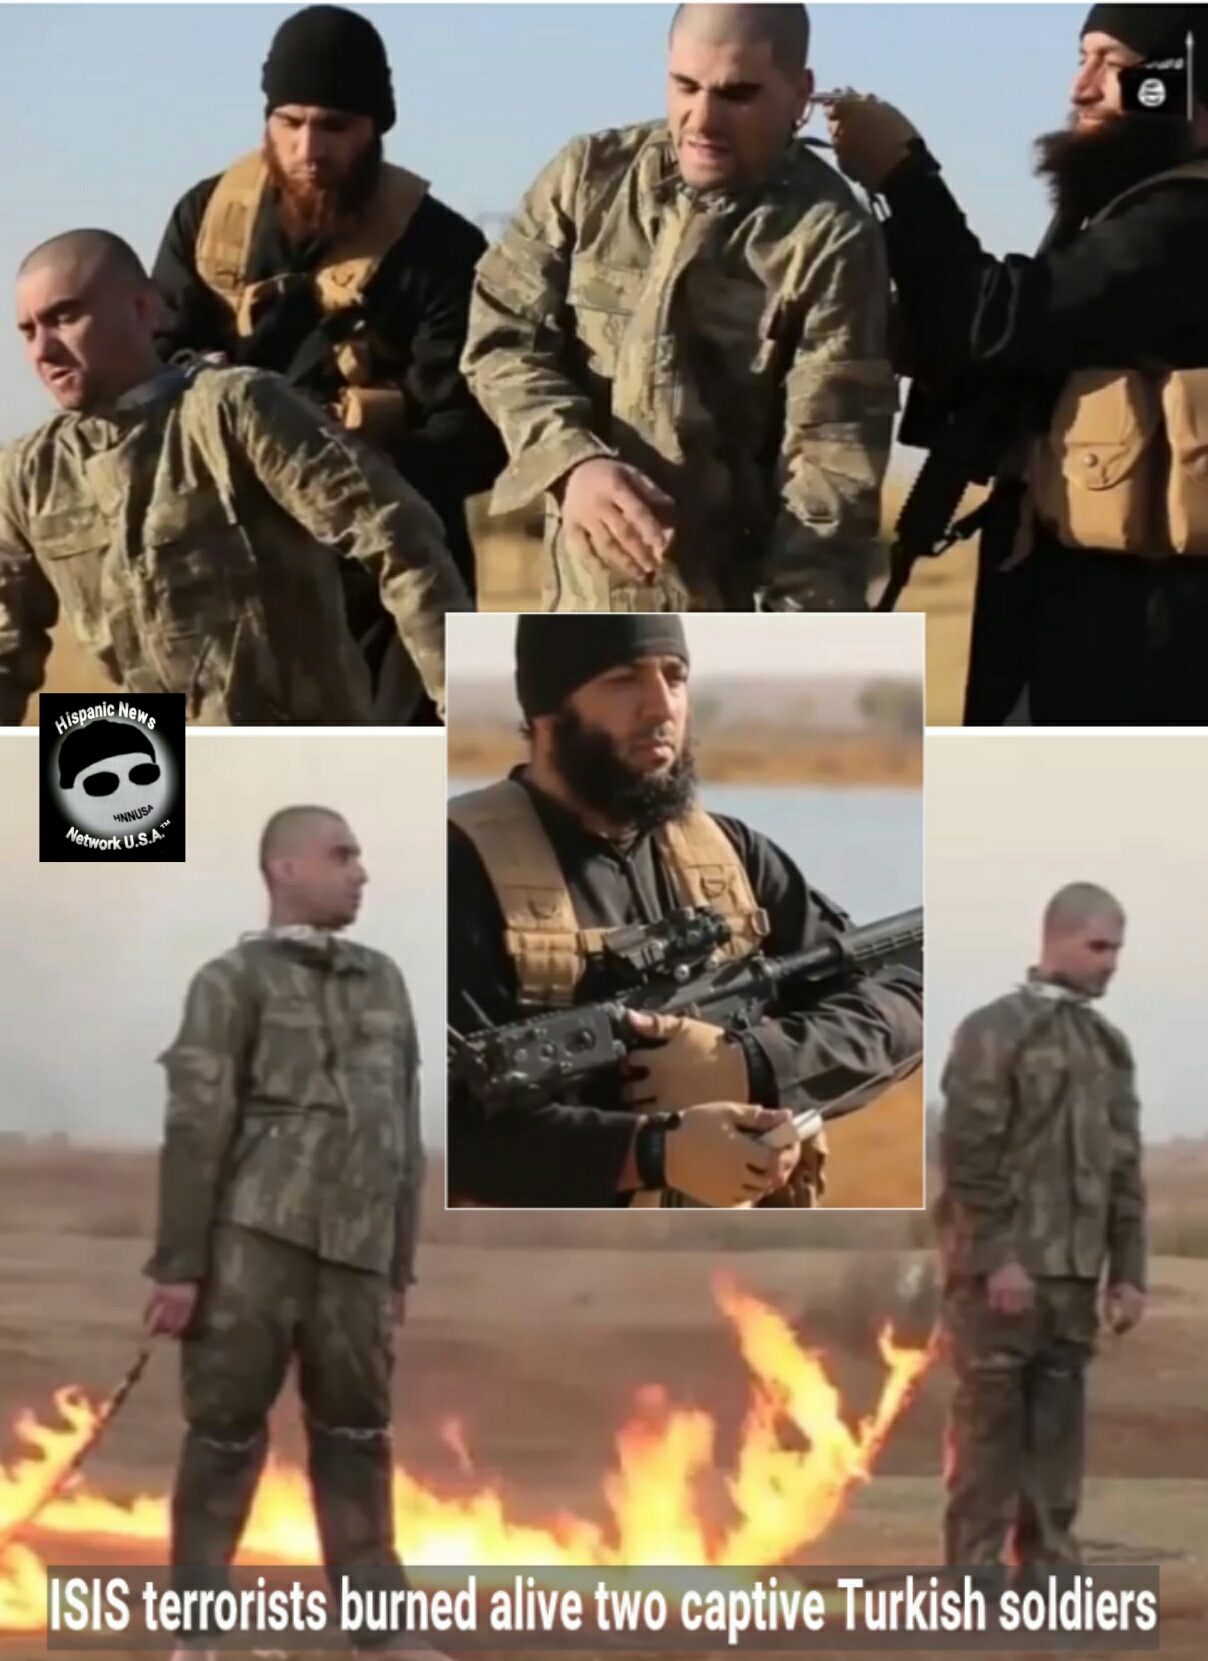 Video Shows Several Turkish Soldiers Burned Alive By ISIS